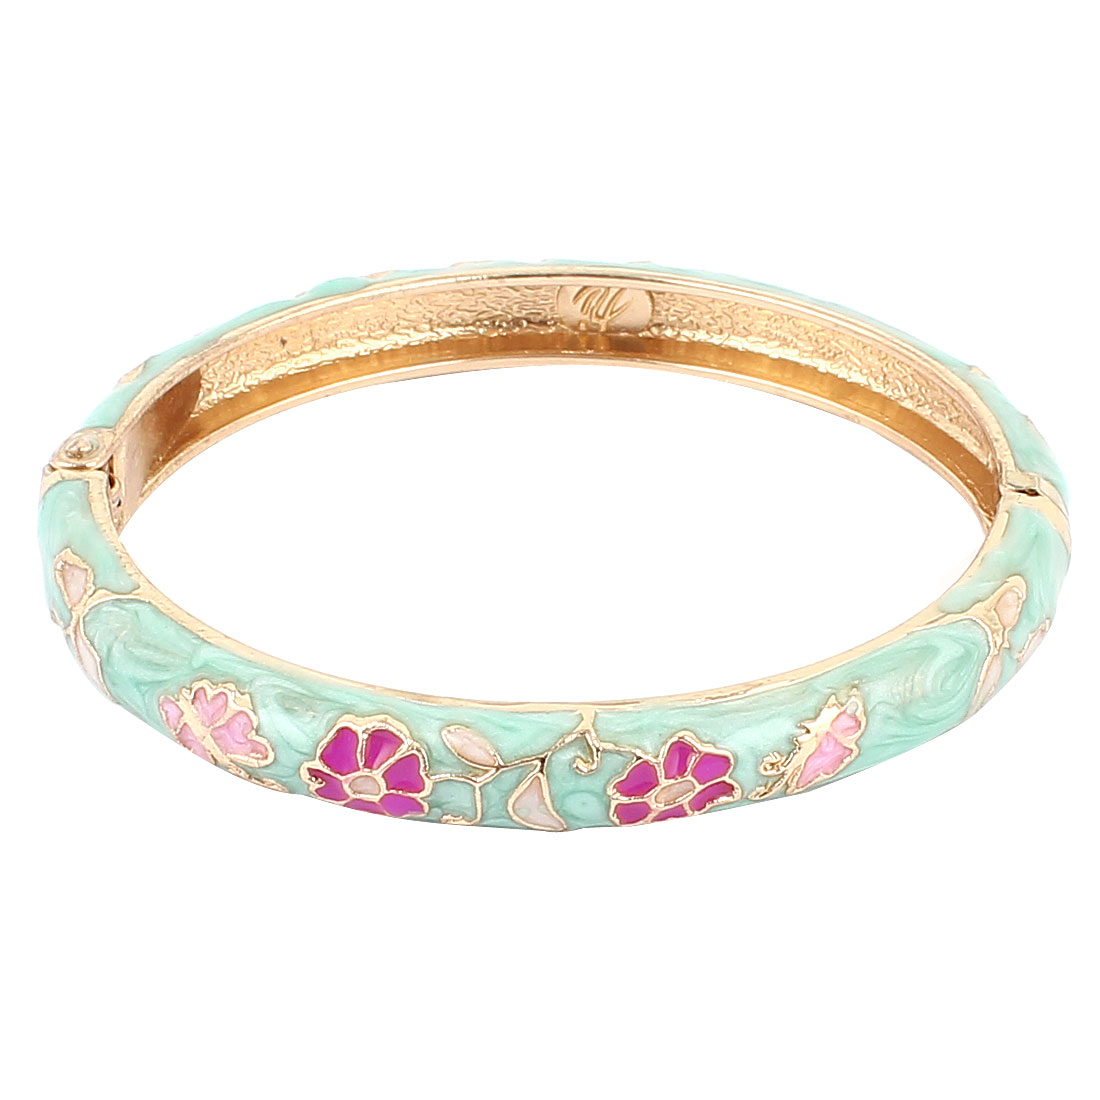 Lady 2.3-inch Dia Teal Hinged Wrist Enamel Bracelet Bangle